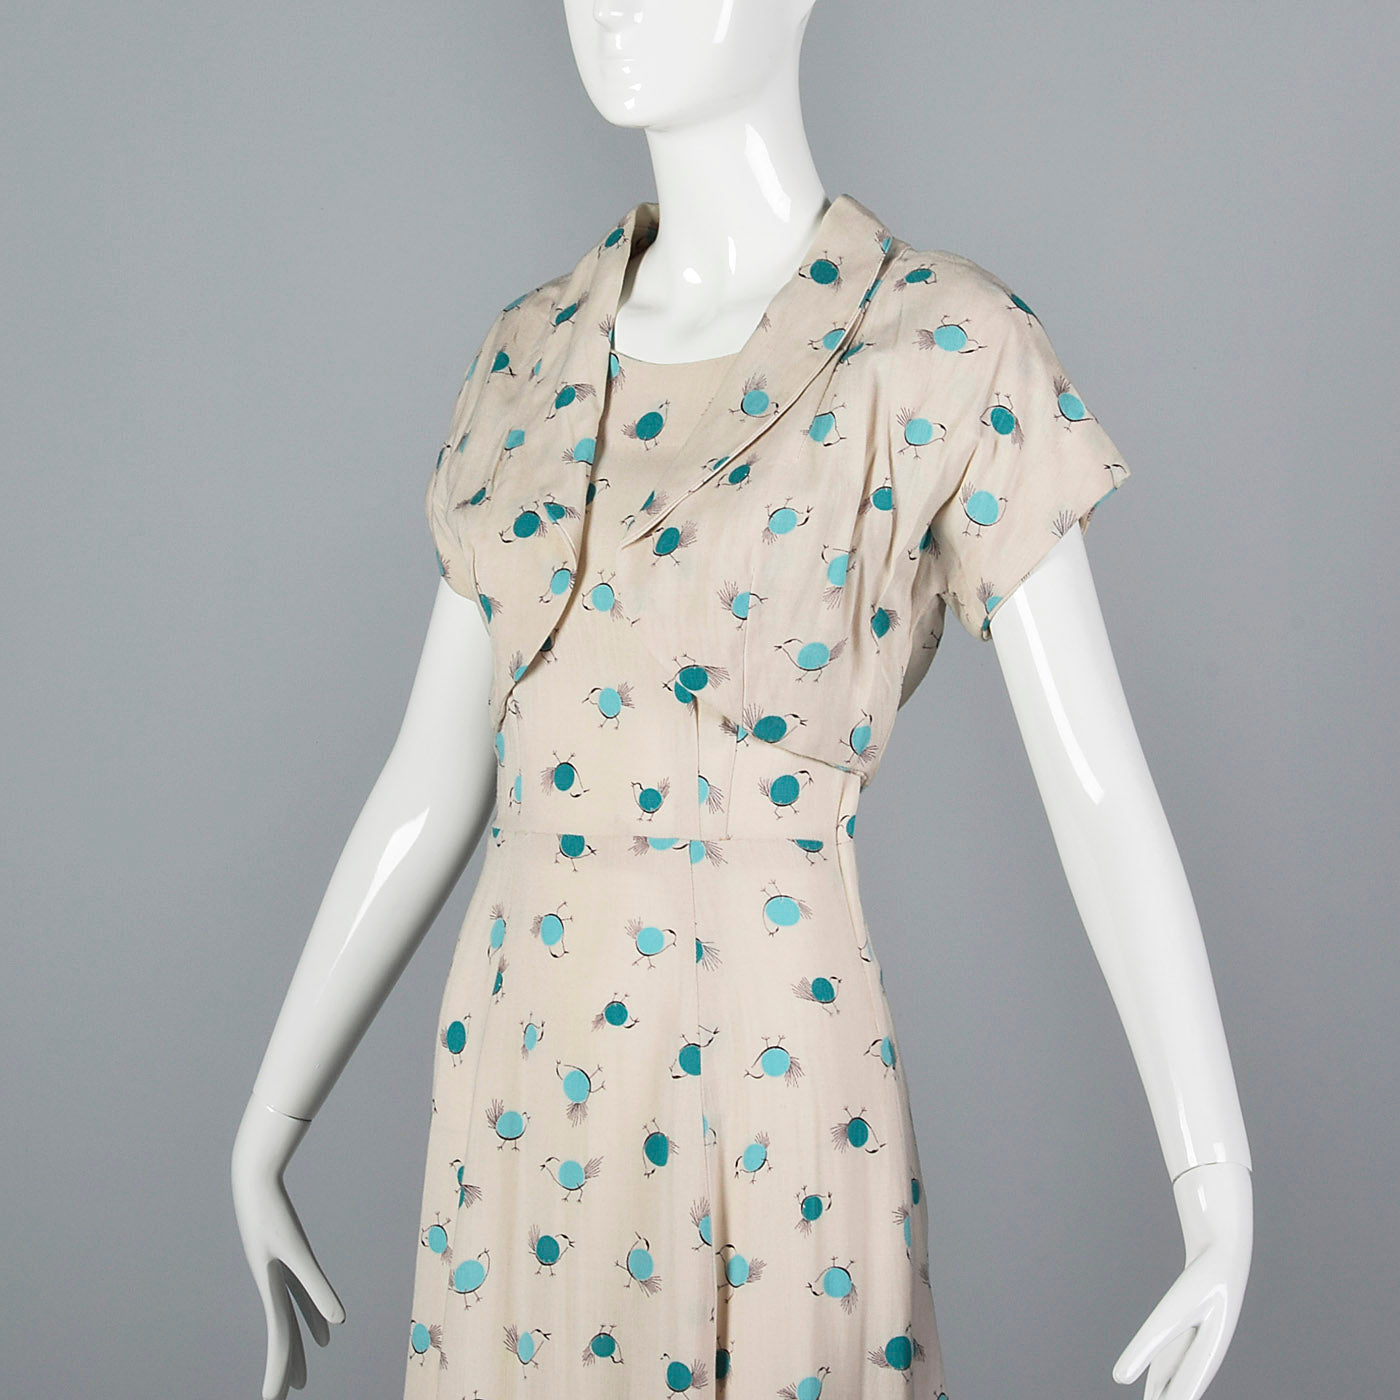 1950s Novelty Print Dress with Abstract Blue Birds